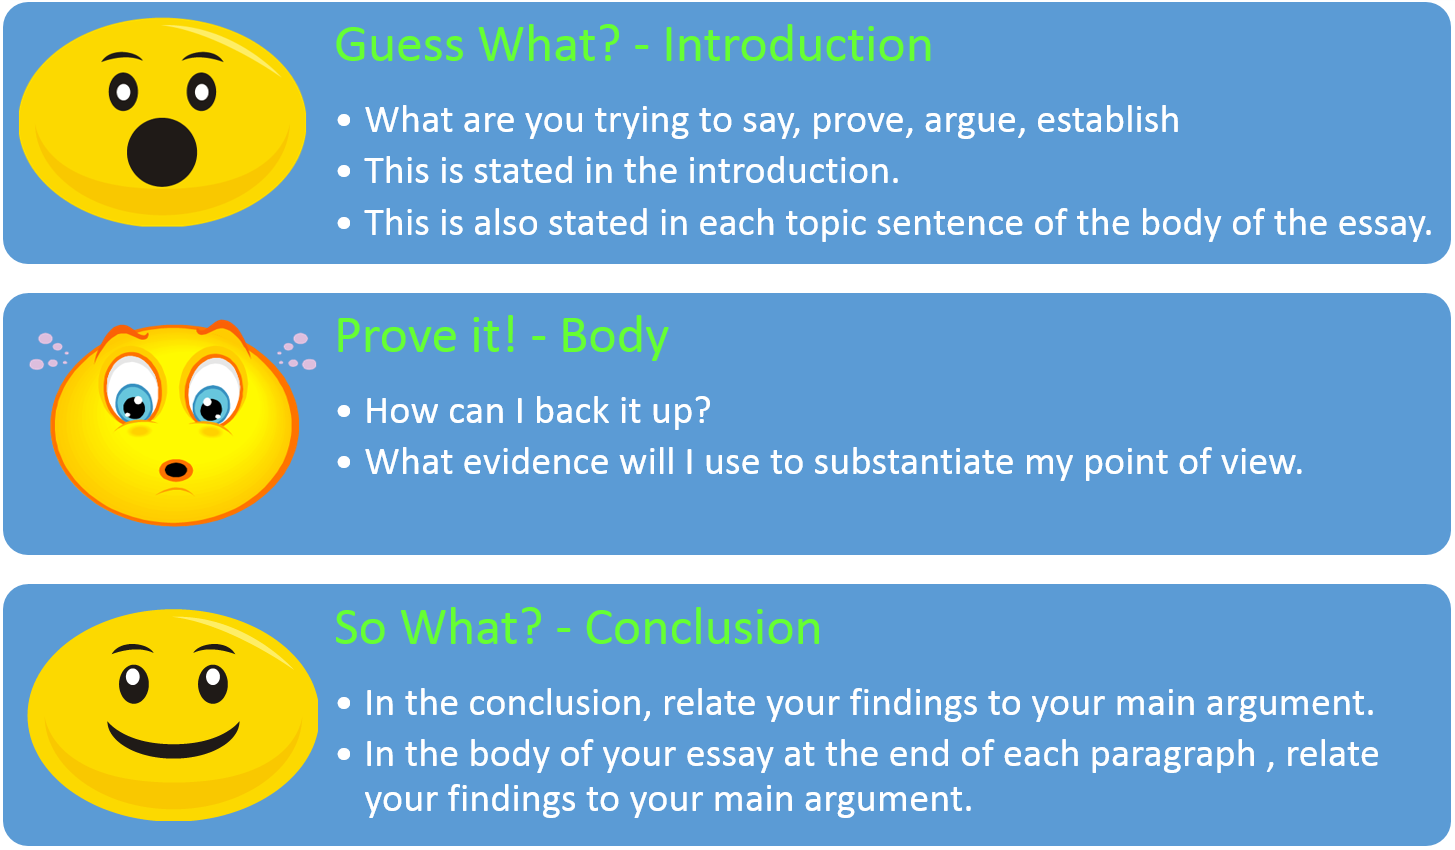 Easy Way To Write An Essay Bildresultat Fr Descriptive Essay Introduction Body Conclusion Essays On Gender Equality also What Is College For Essay Bildresultat Fr Descriptive Essay Introduction Body Conclusion  Economics Essay Topics